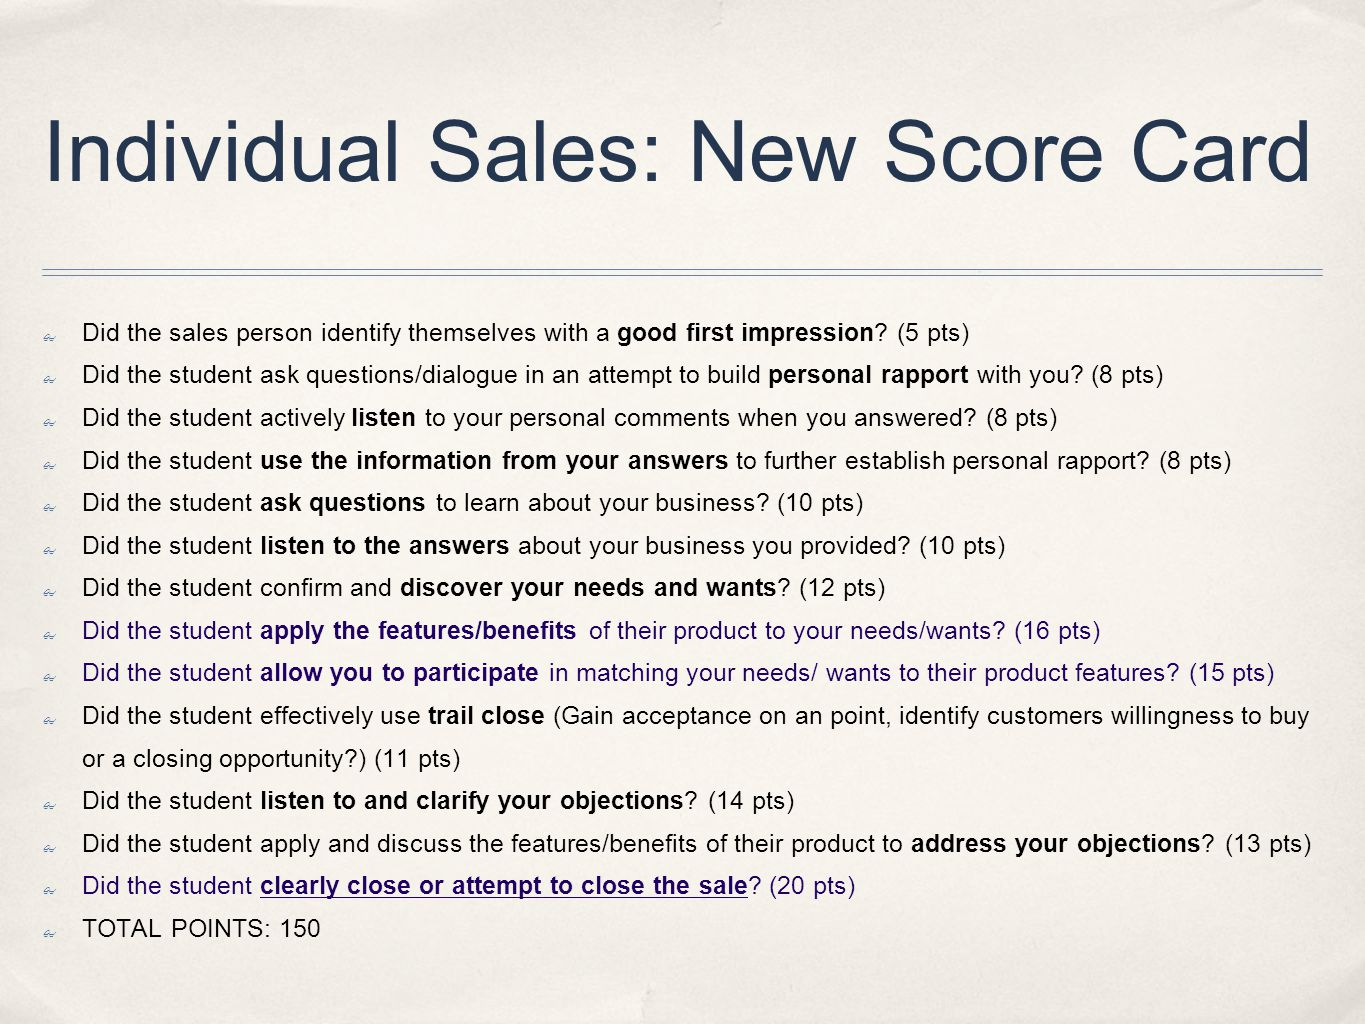 Individual Sales: New Score Card